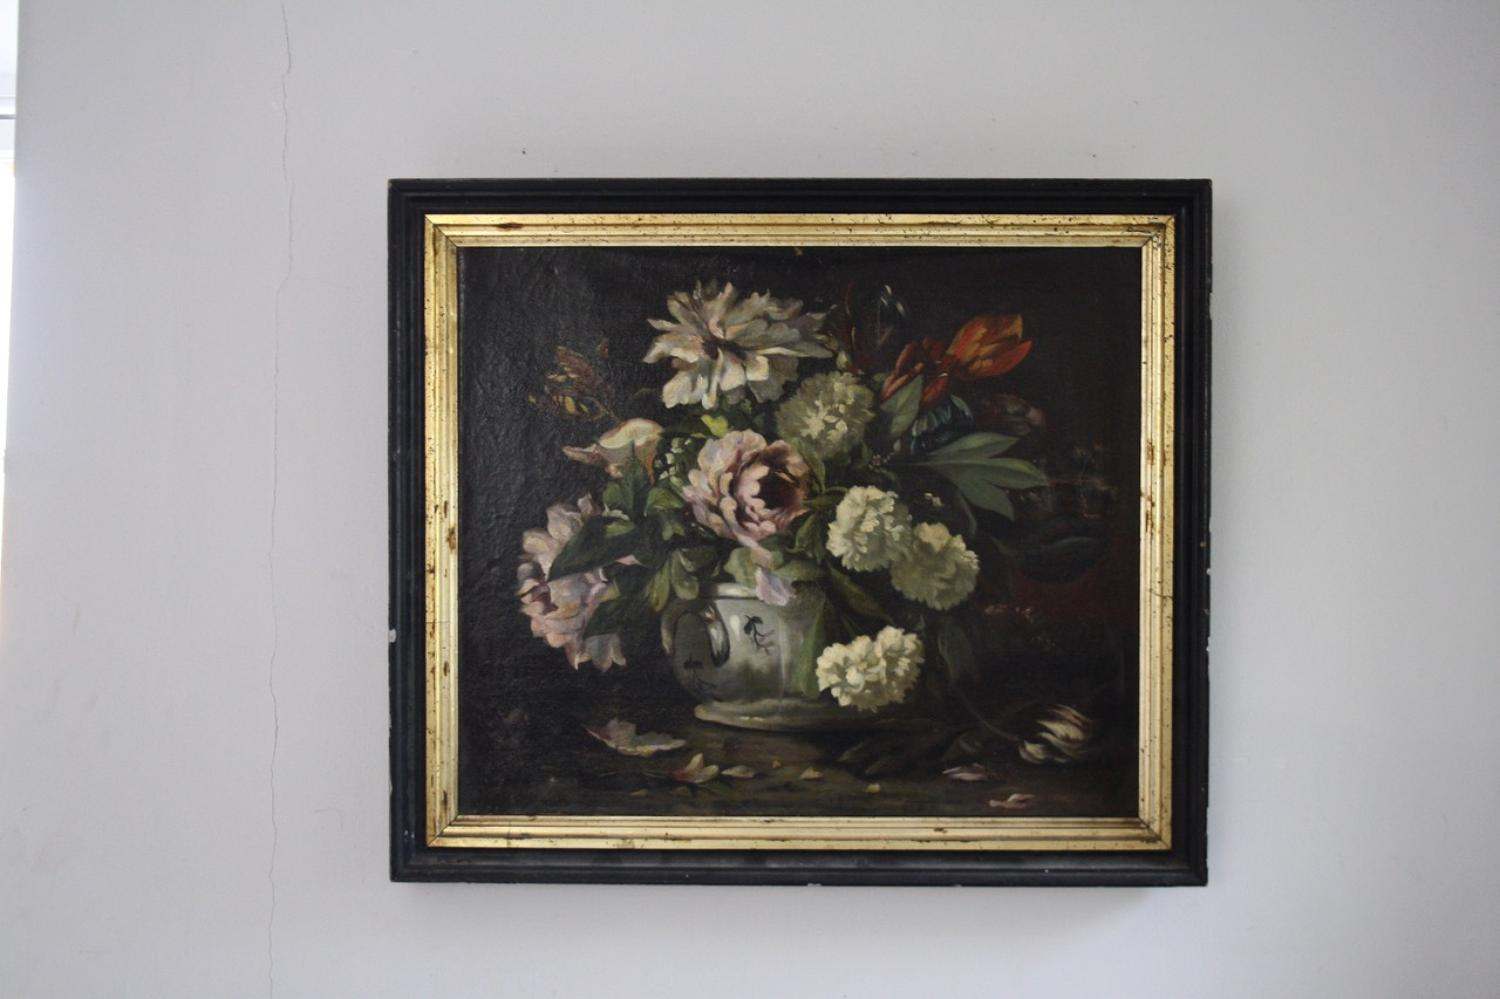 French 19th century floral oil painting in frame